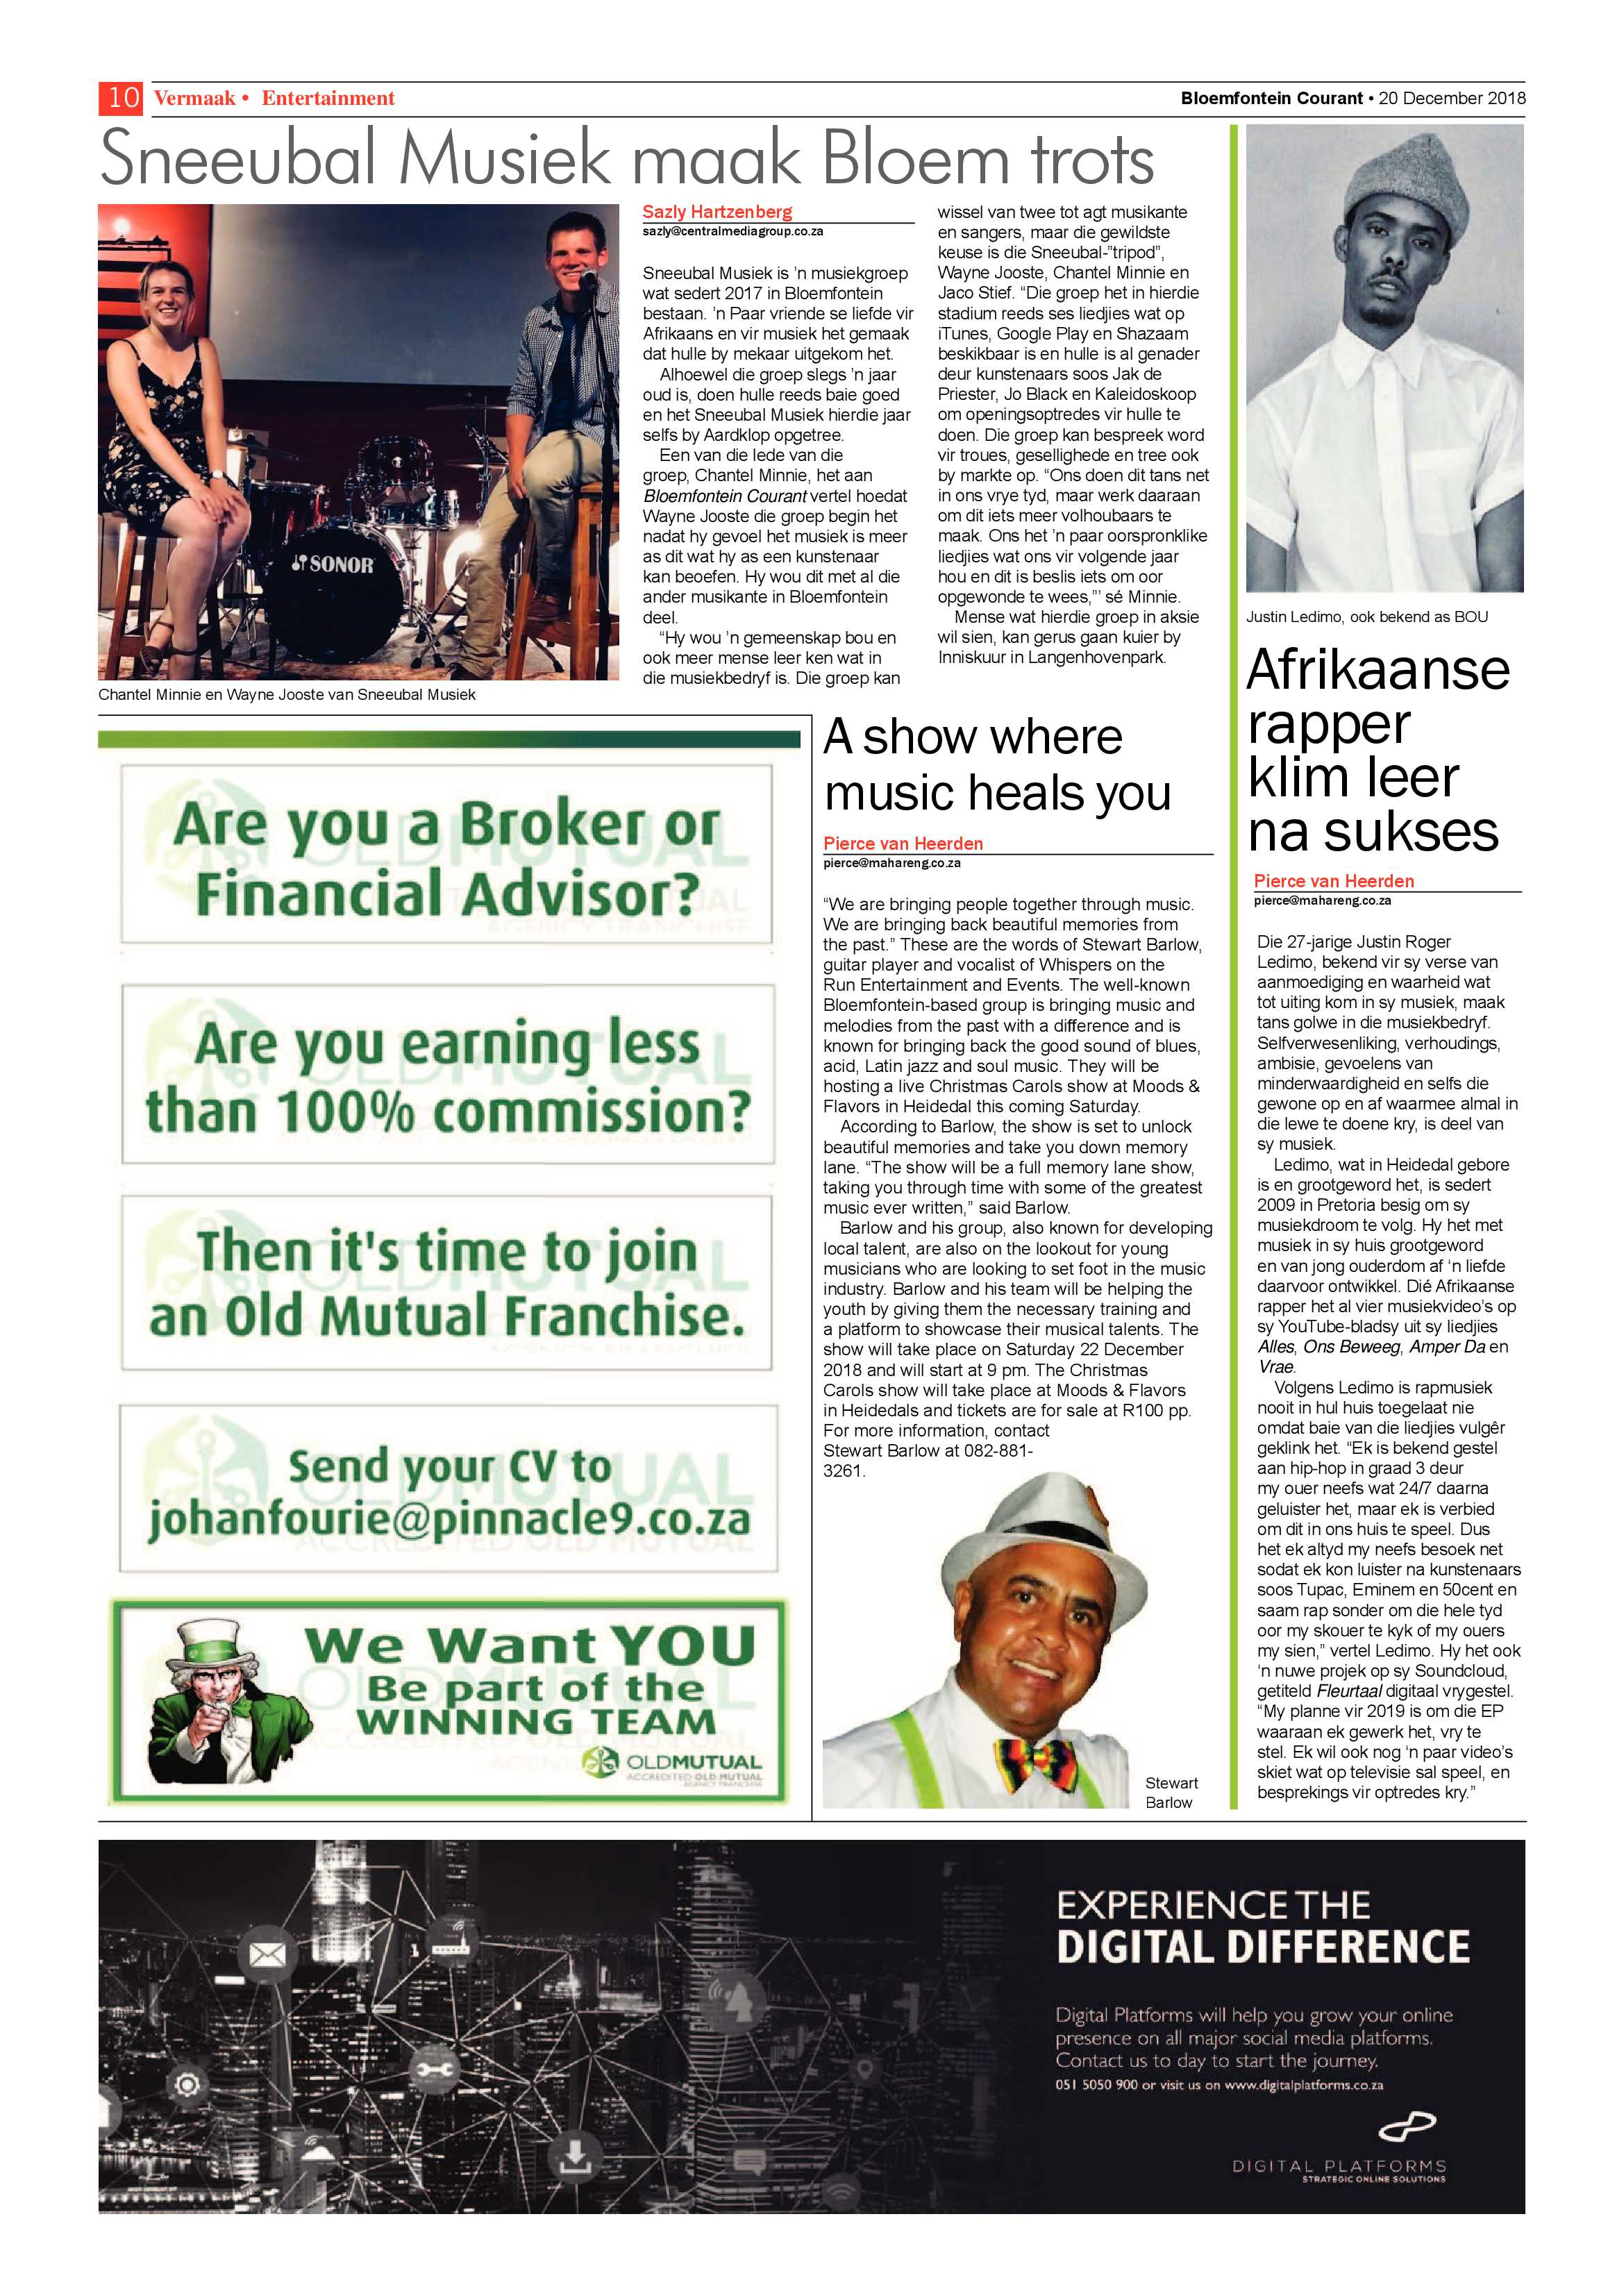 courant-20-december-2018-epapers-page-10